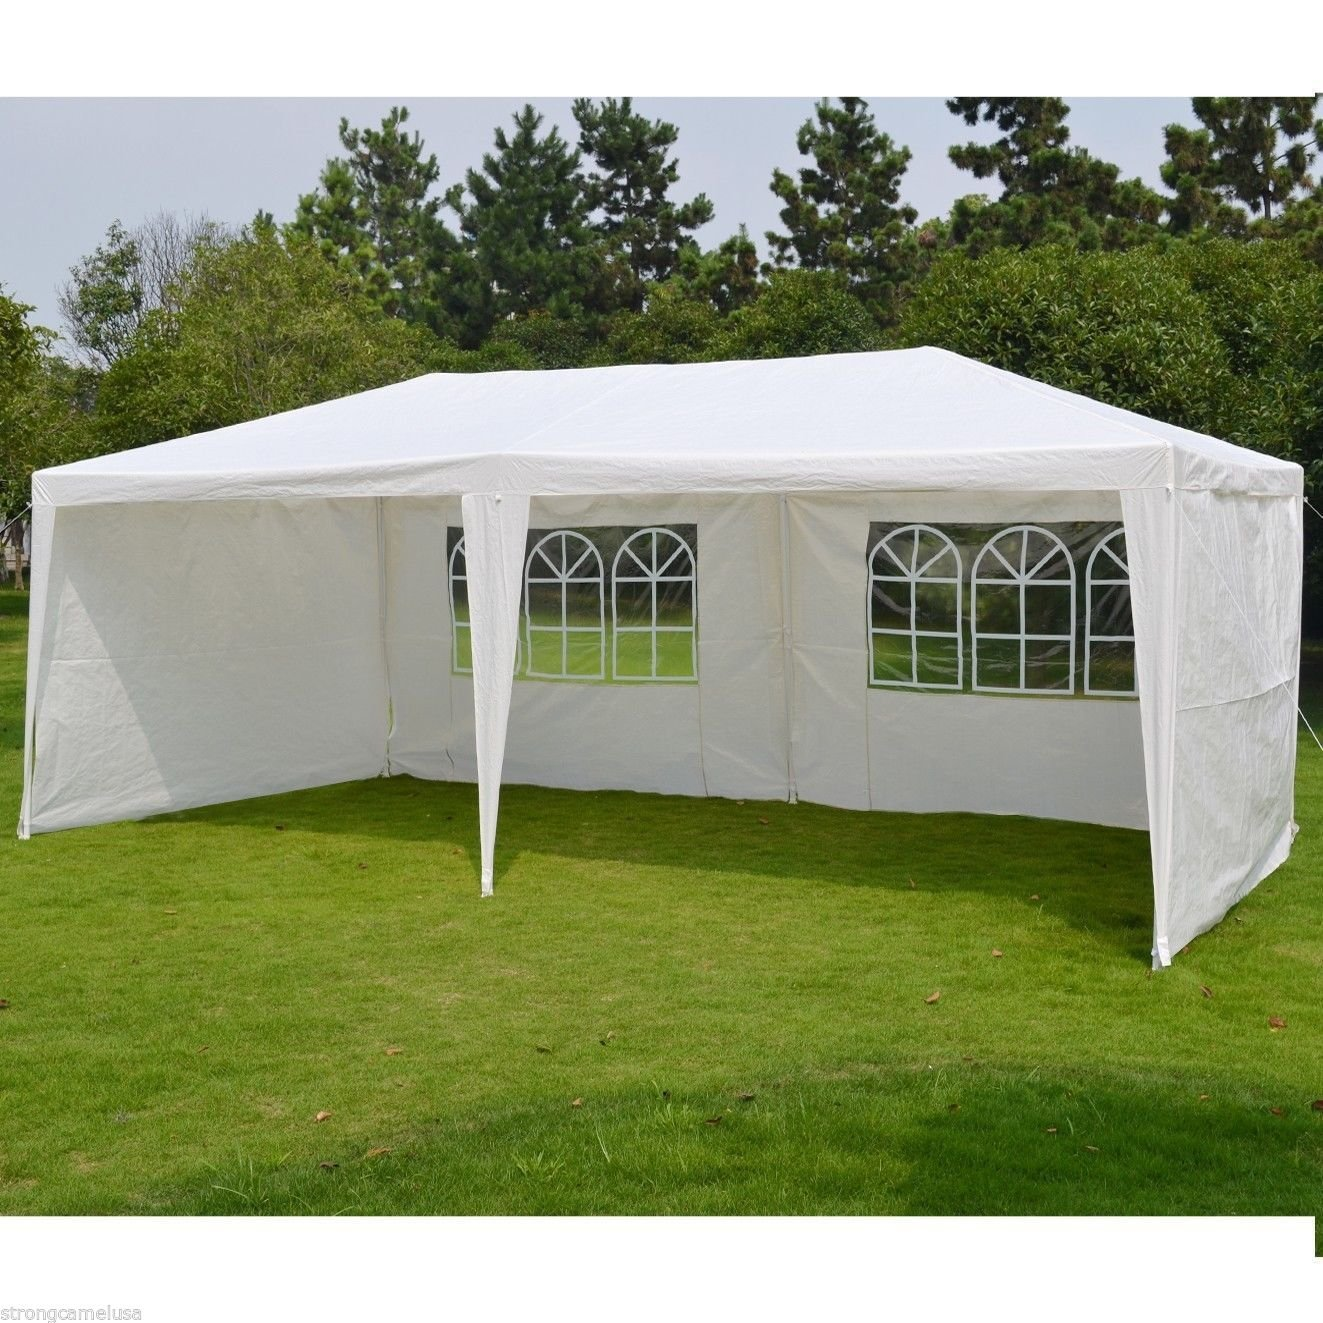 LIVIVO ® Extra Large Party Gazebo with 4 Detachable Panels and 2 Visible Windows - Great for Parties Weddings C&ing Picnics BBQ Fairs Markets ... & LIVIVO ® Extra Large Party Gazebo with 4 Detachable Panels and 2 ...